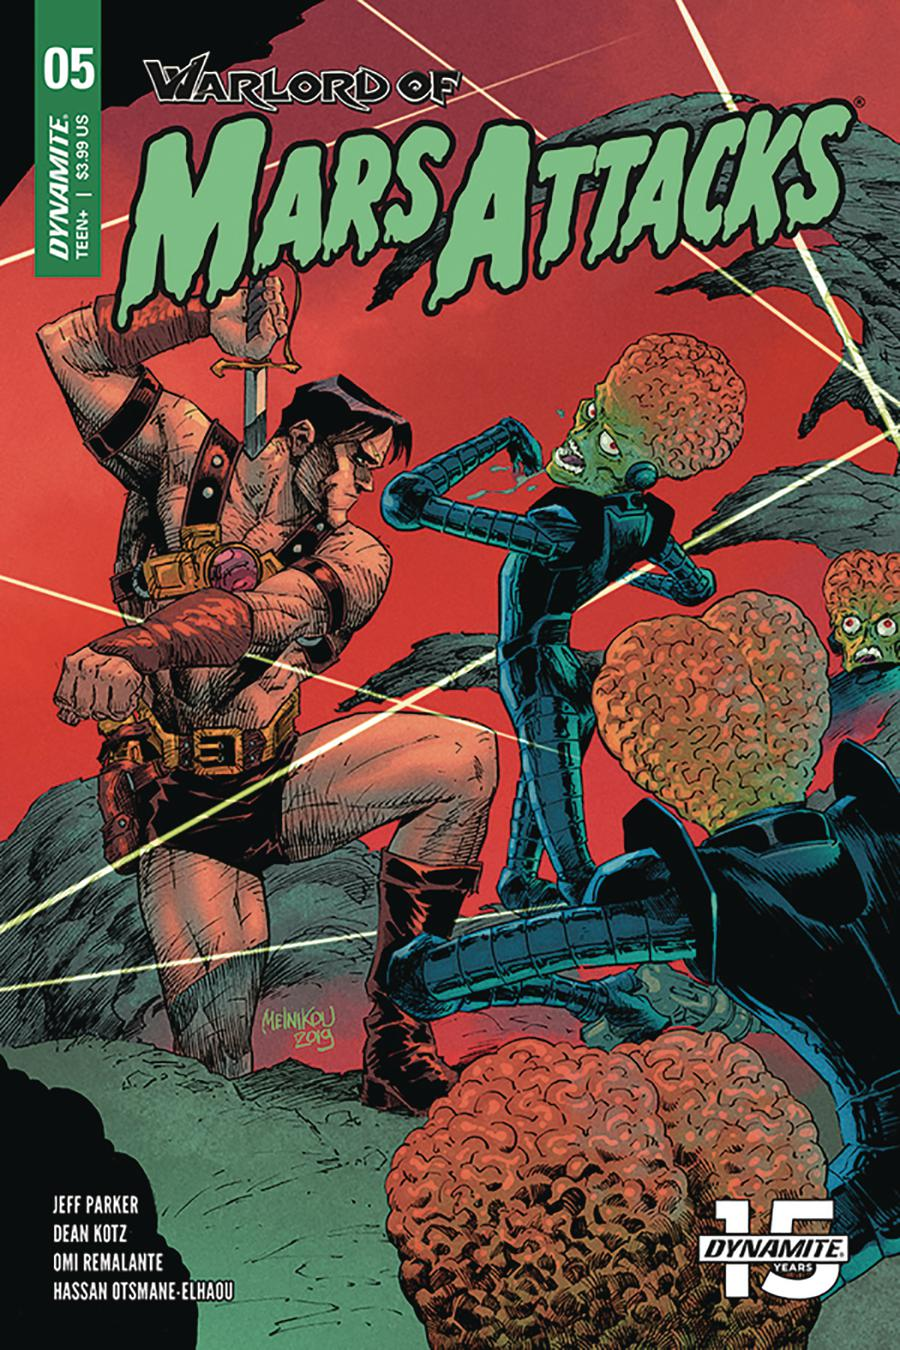 Warlord Of Mars Attacks #5 Cover C Variant Gleb Melnikov Cover